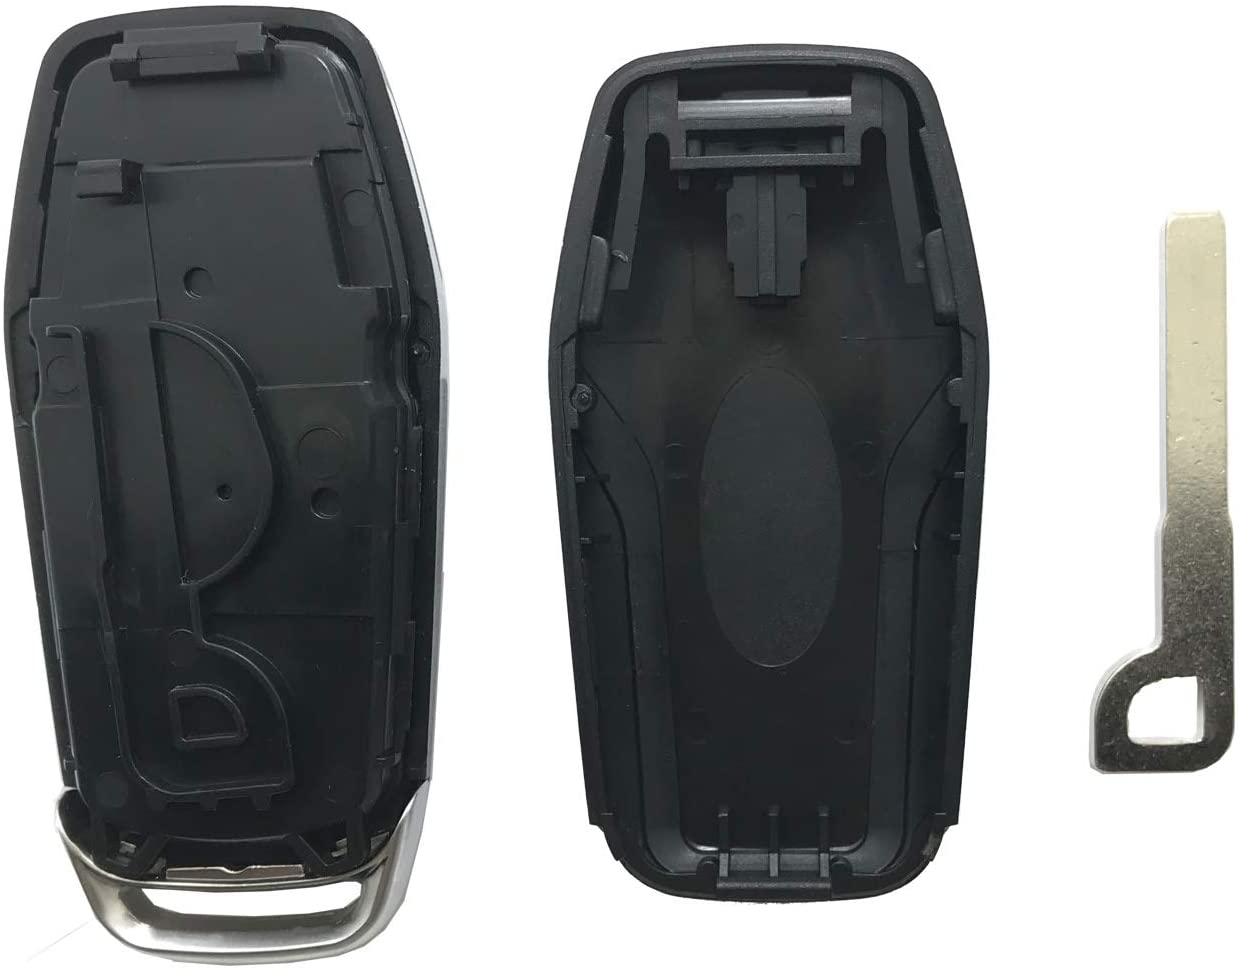 Black Smart Key Fob Shell Case Fit for Ford Fusion Mustang Explorer Edge 5 Buttons Keyless Entry Remote Key Fob Cover Housing